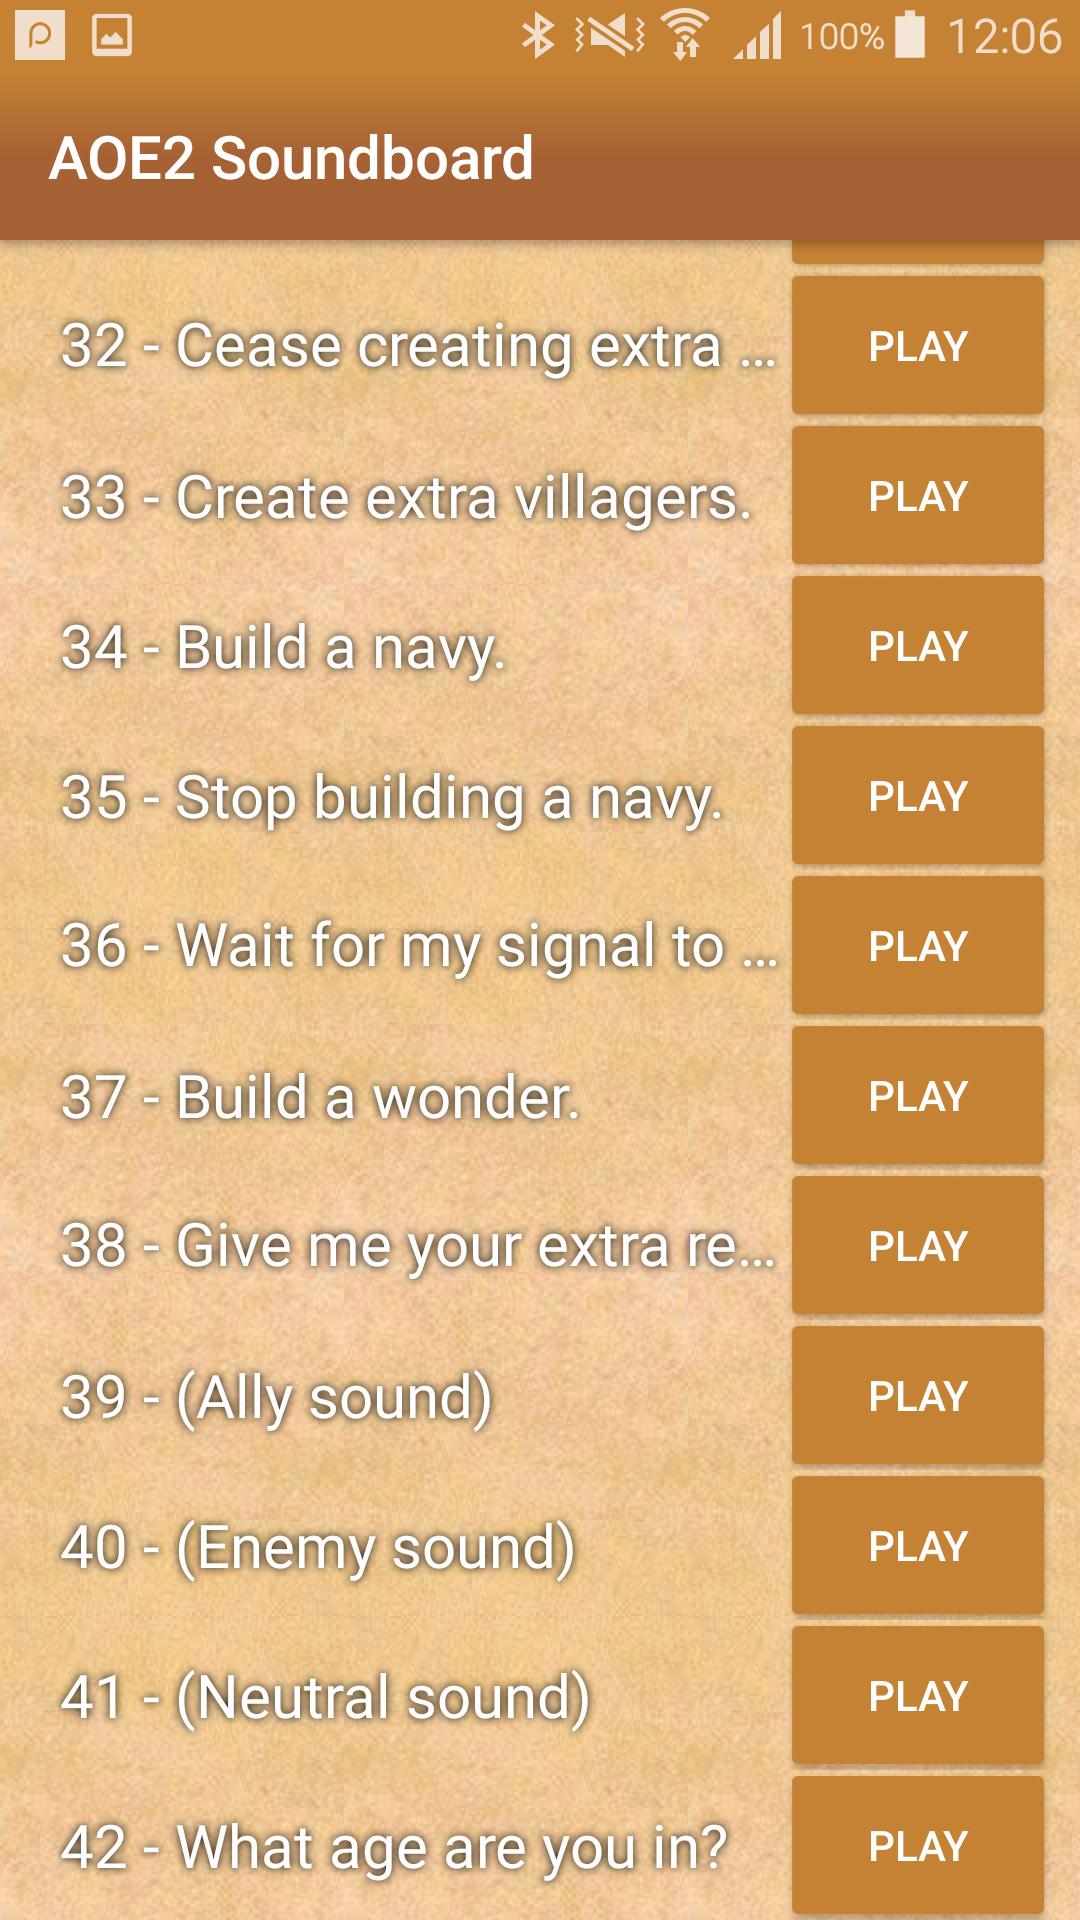 Soundboard for AOE2 for Android - APK Download